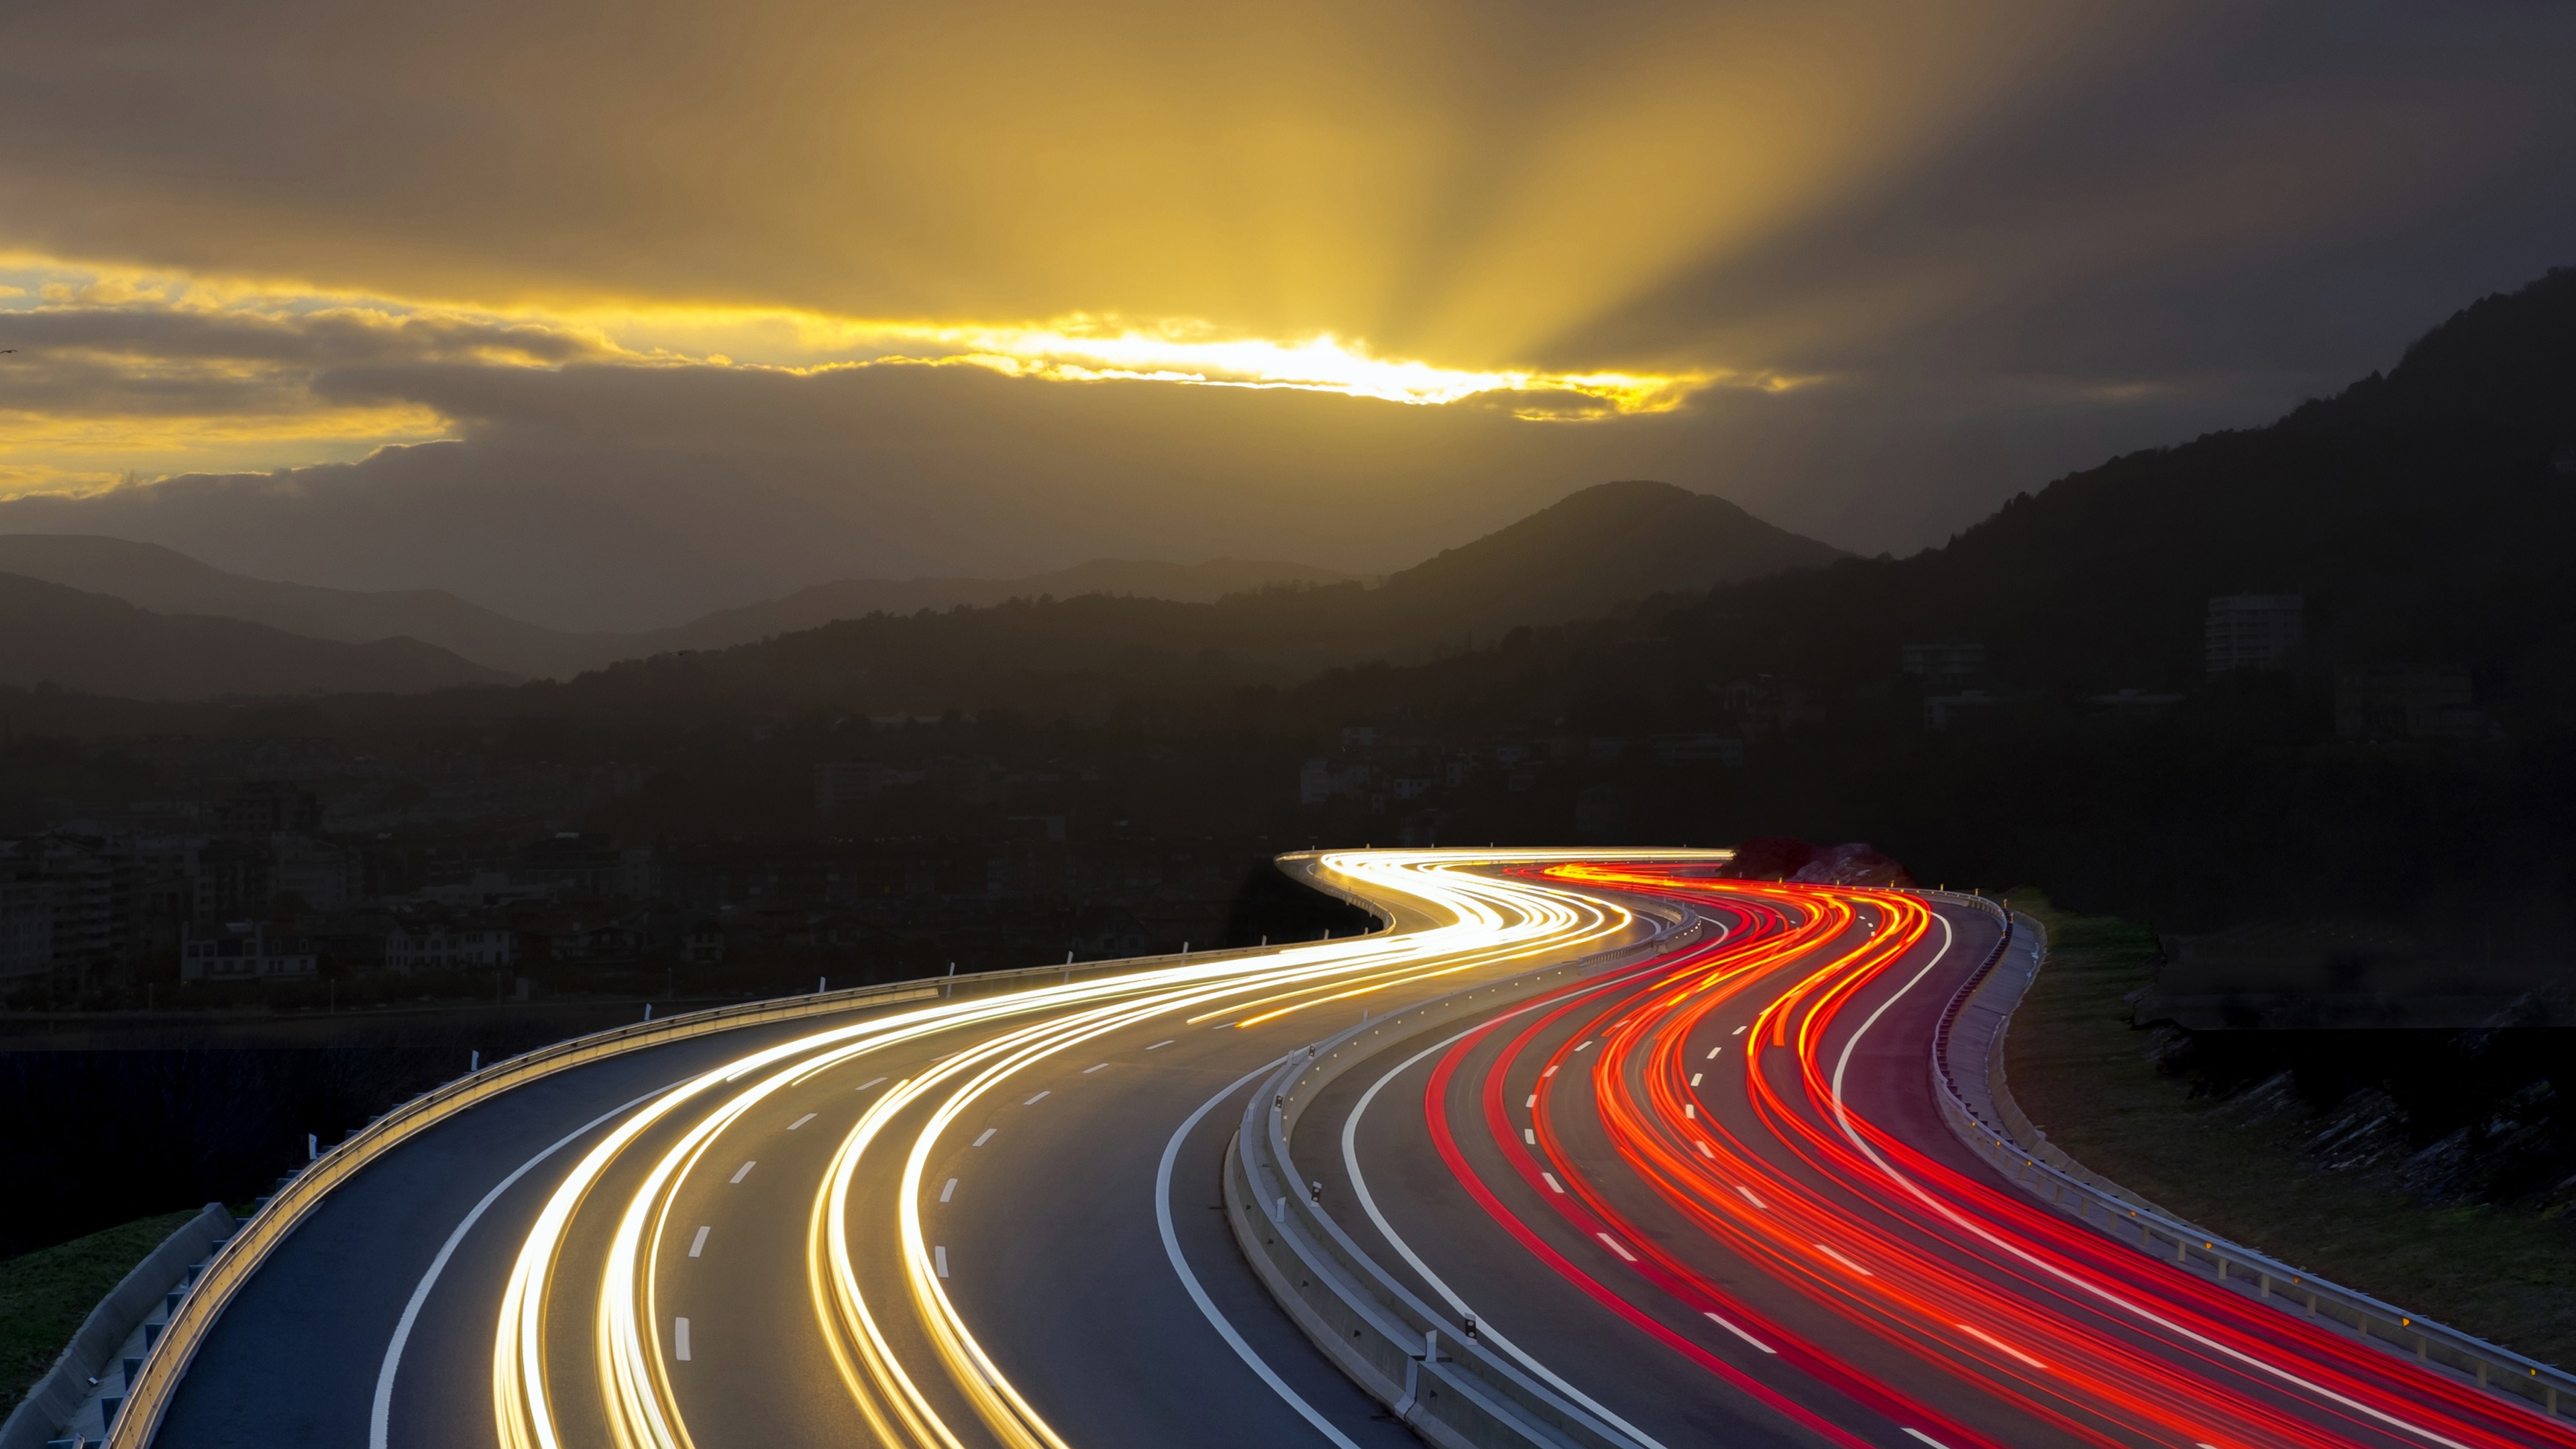 Highway Long Exposure Photography Background 4k 3840x2160